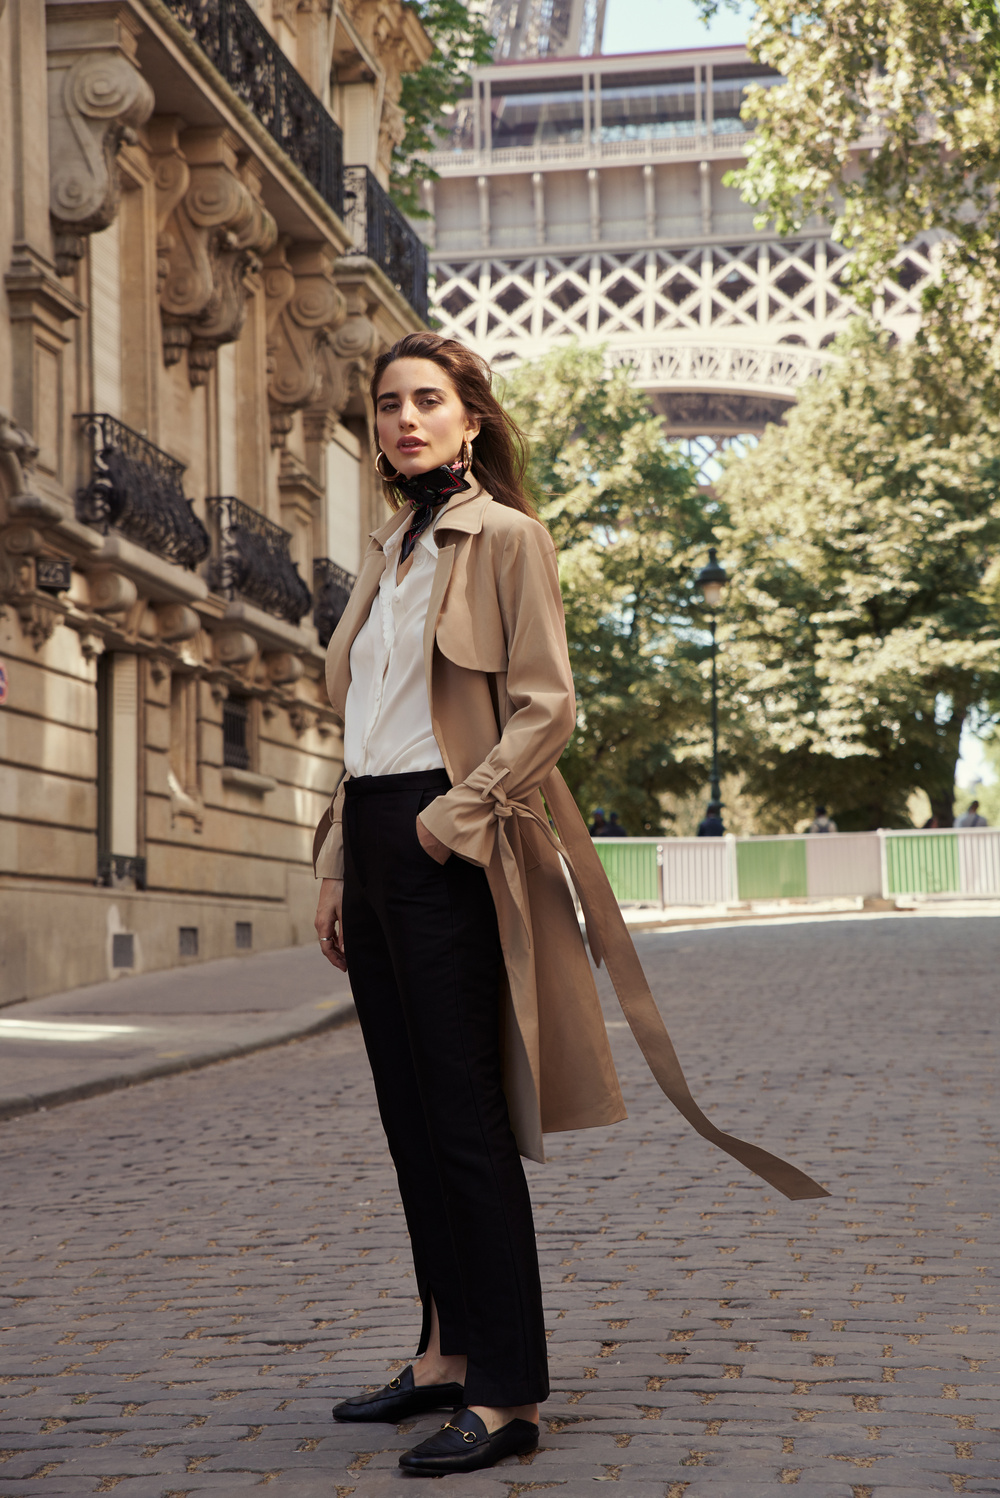 Jane trench coat